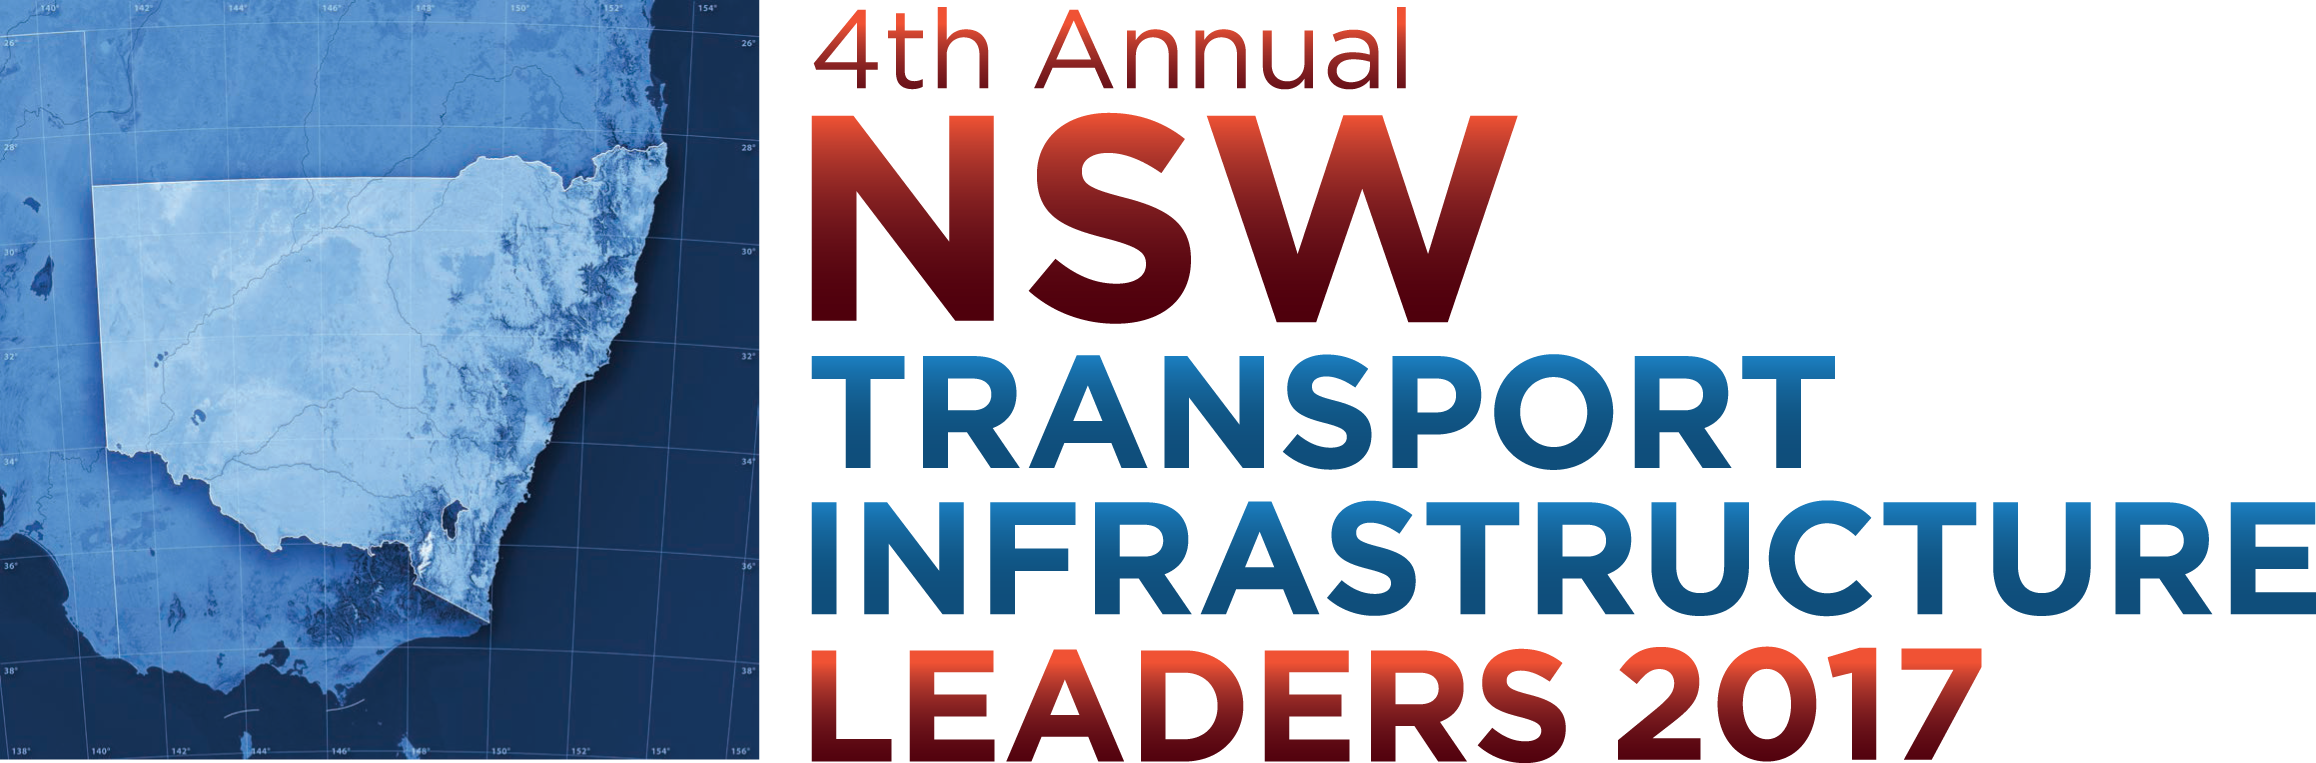 4th Annual NSW Transport Infrastructure Leaders 2017